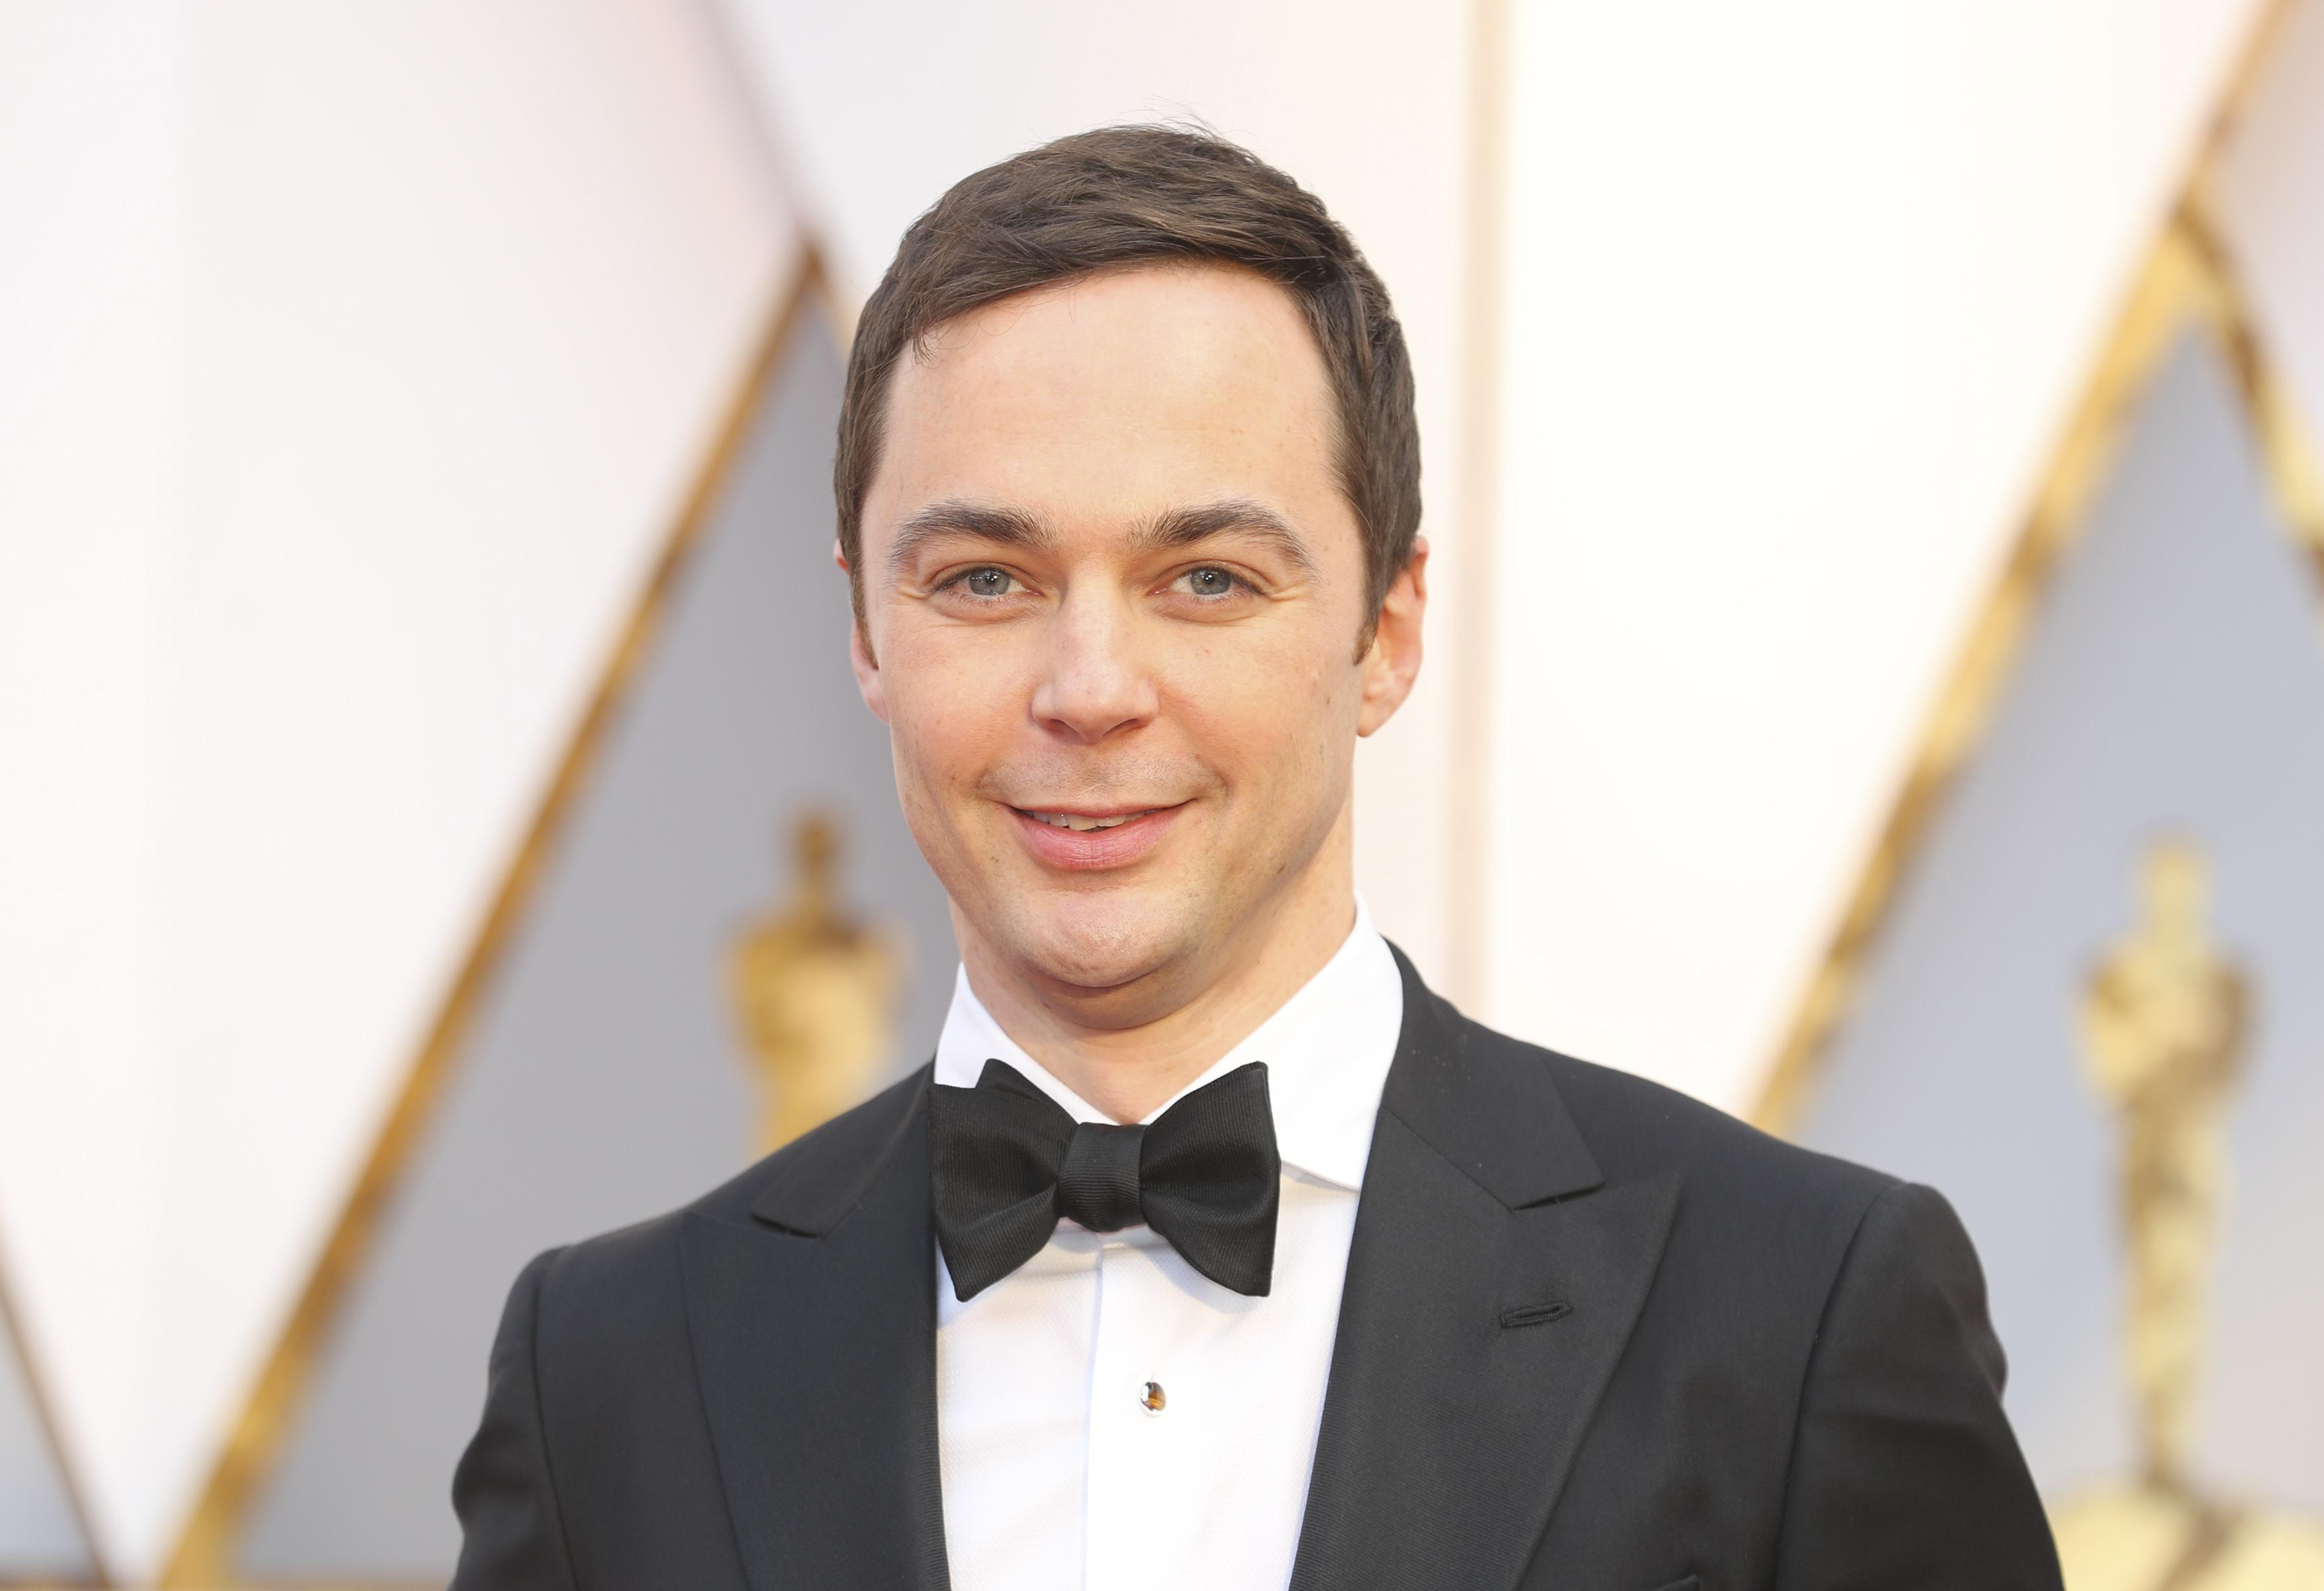 jim parsons young pictures |Jim Parsons Young